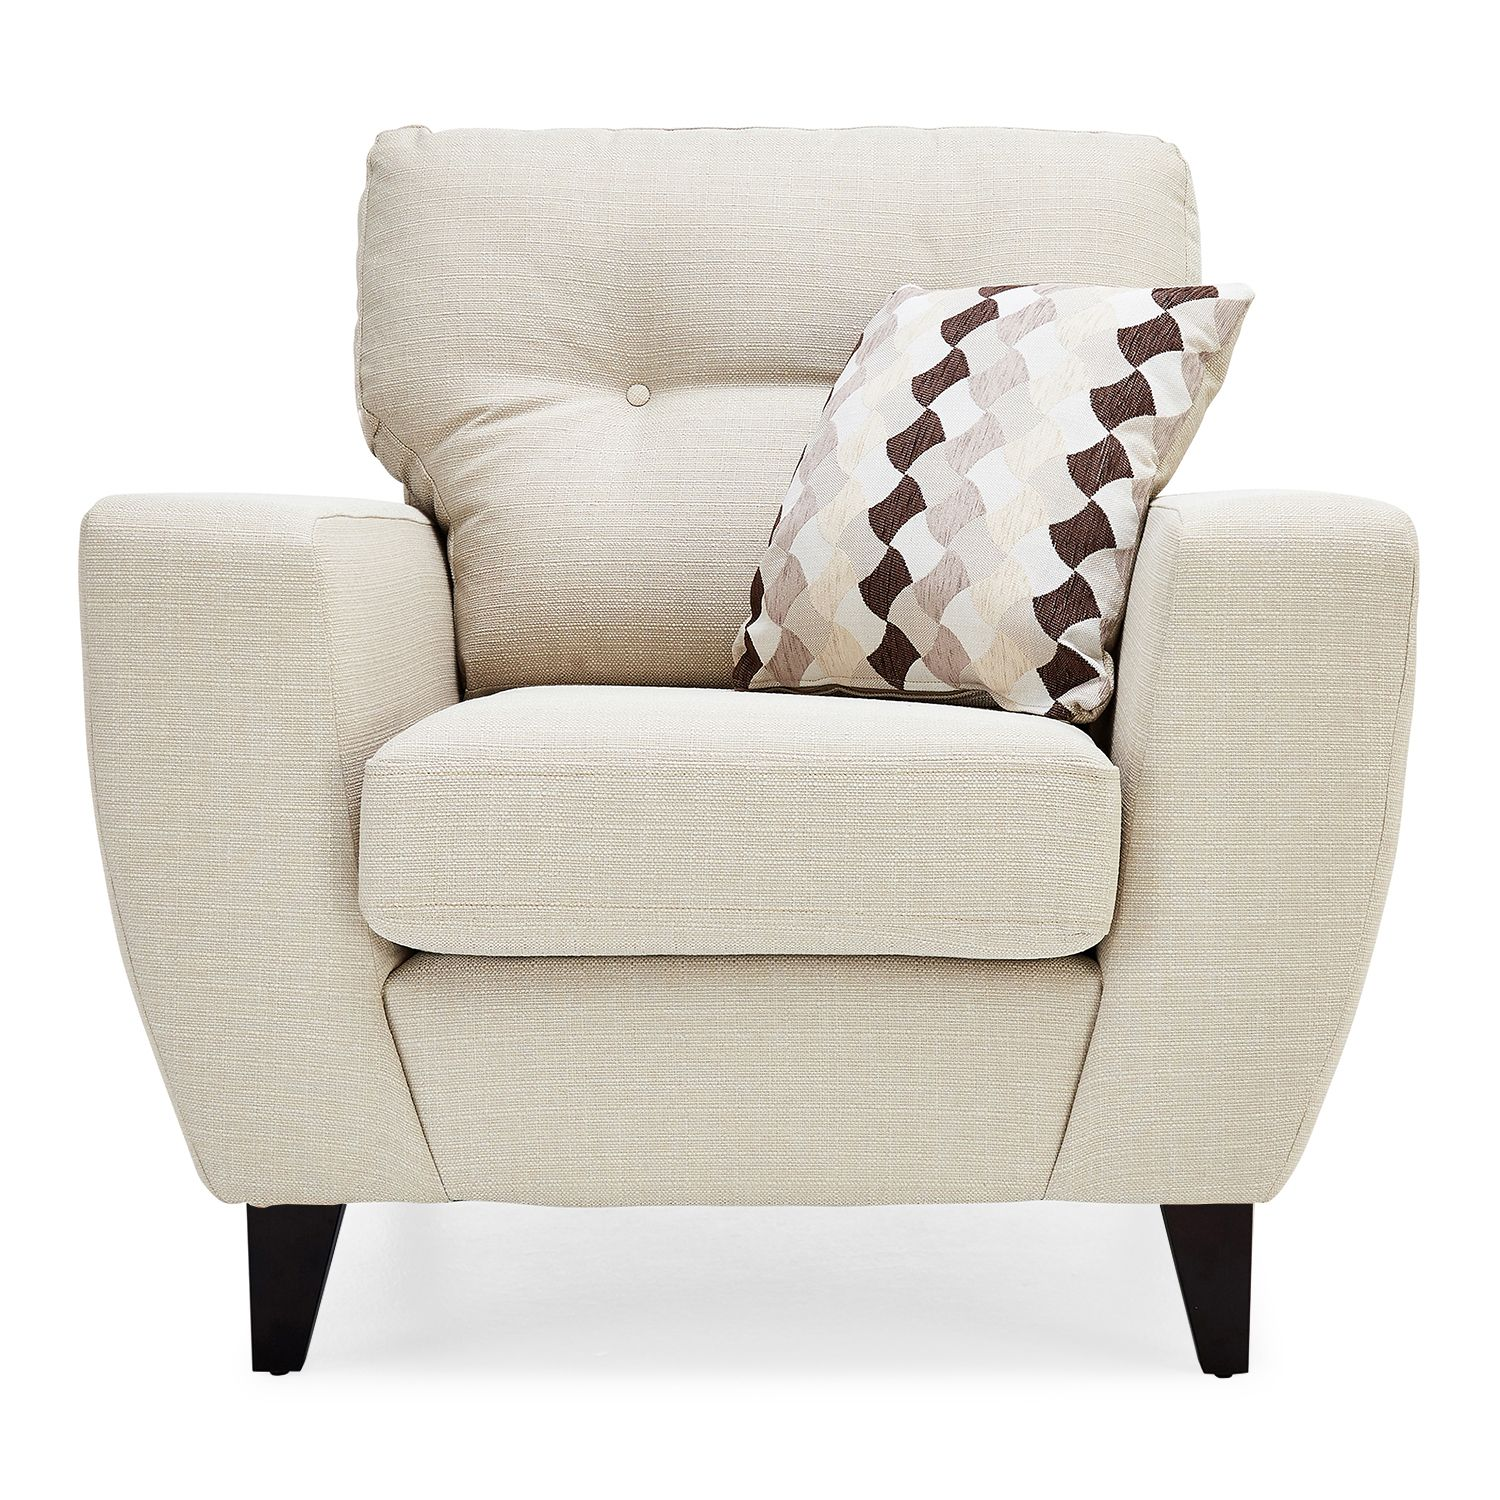 armchairs uk | armchairs cheap | armchairs | armchairs for ...